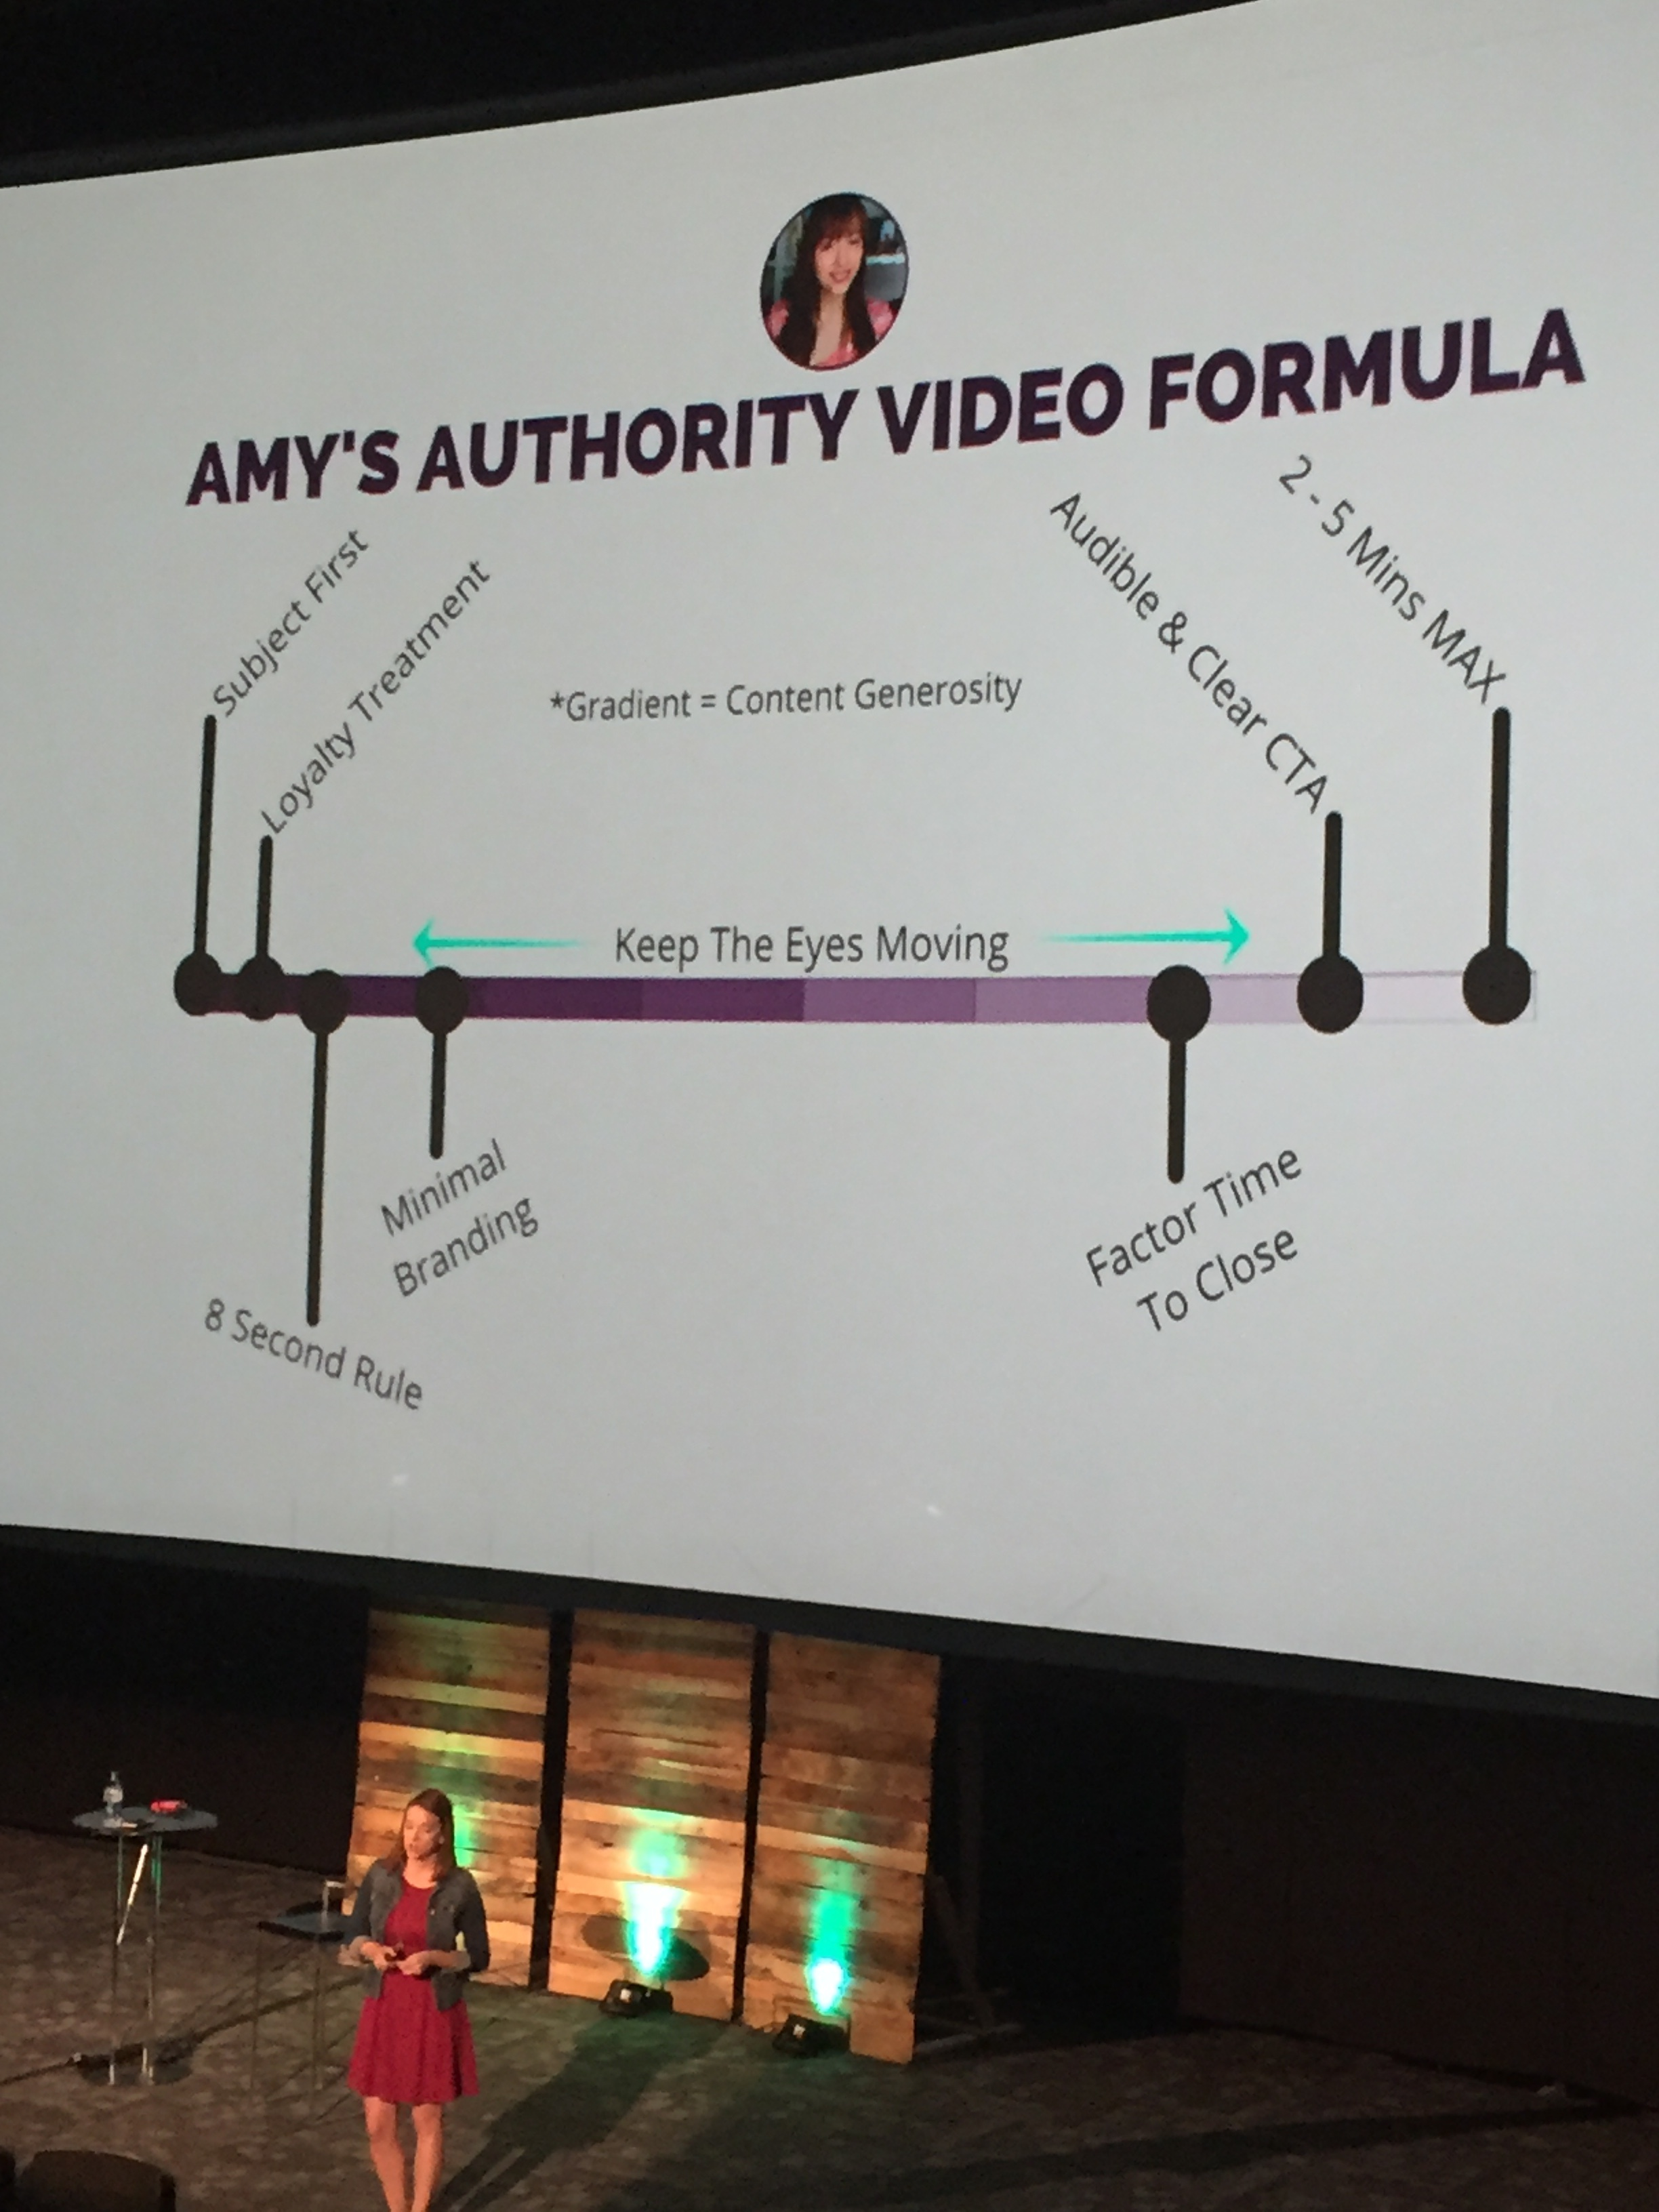 Amys_Authority_Formula.jpg